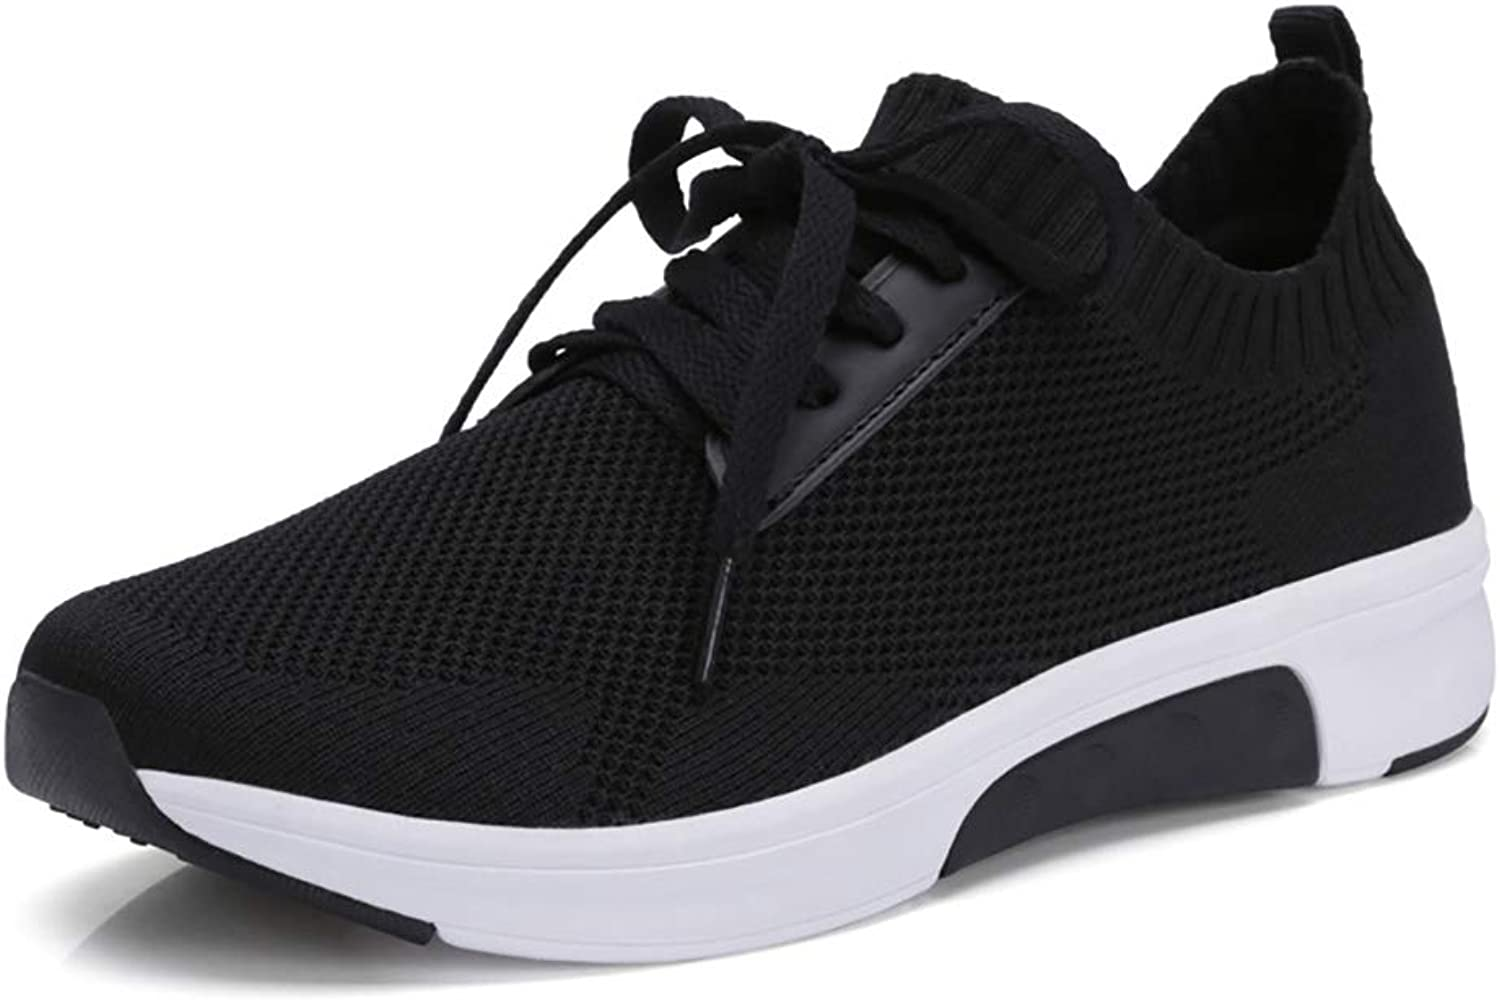 Women's shoes Summer and Autumn Sports shoes Breathable Mesh Running shoes Korean Casual shoes Female Black Pink